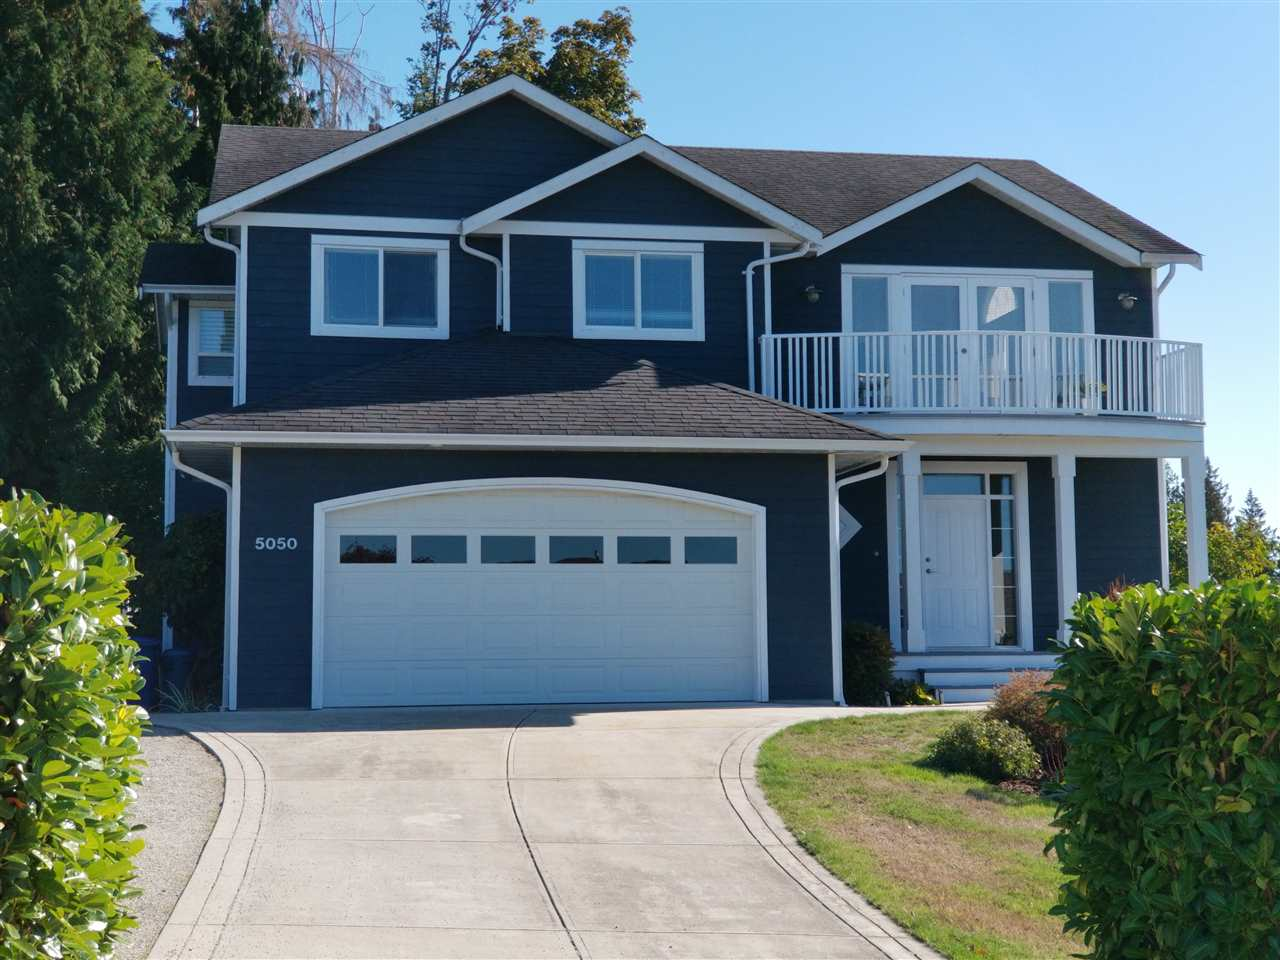 Main Photo: 5050 BAY Road in Sechelt: Sechelt District House for sale (Sunshine Coast)  : MLS® # R2211781